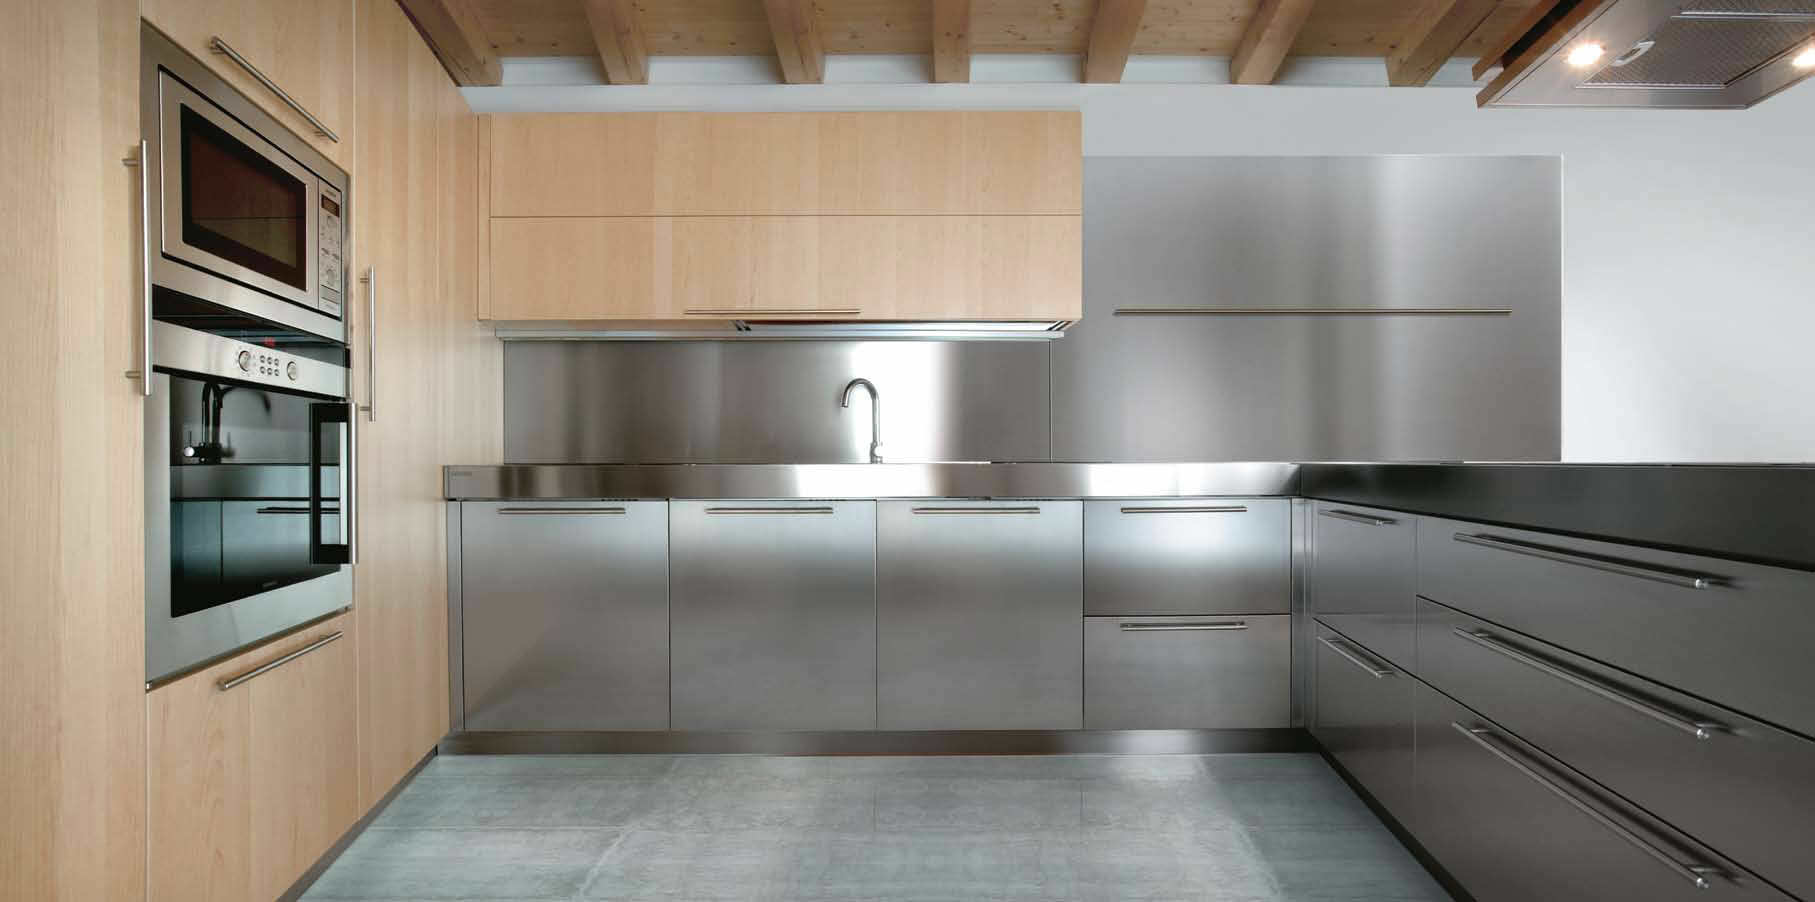 product metal kitchen cabinets Contemporary kitchen stainless steel solid wood wooden 01 C